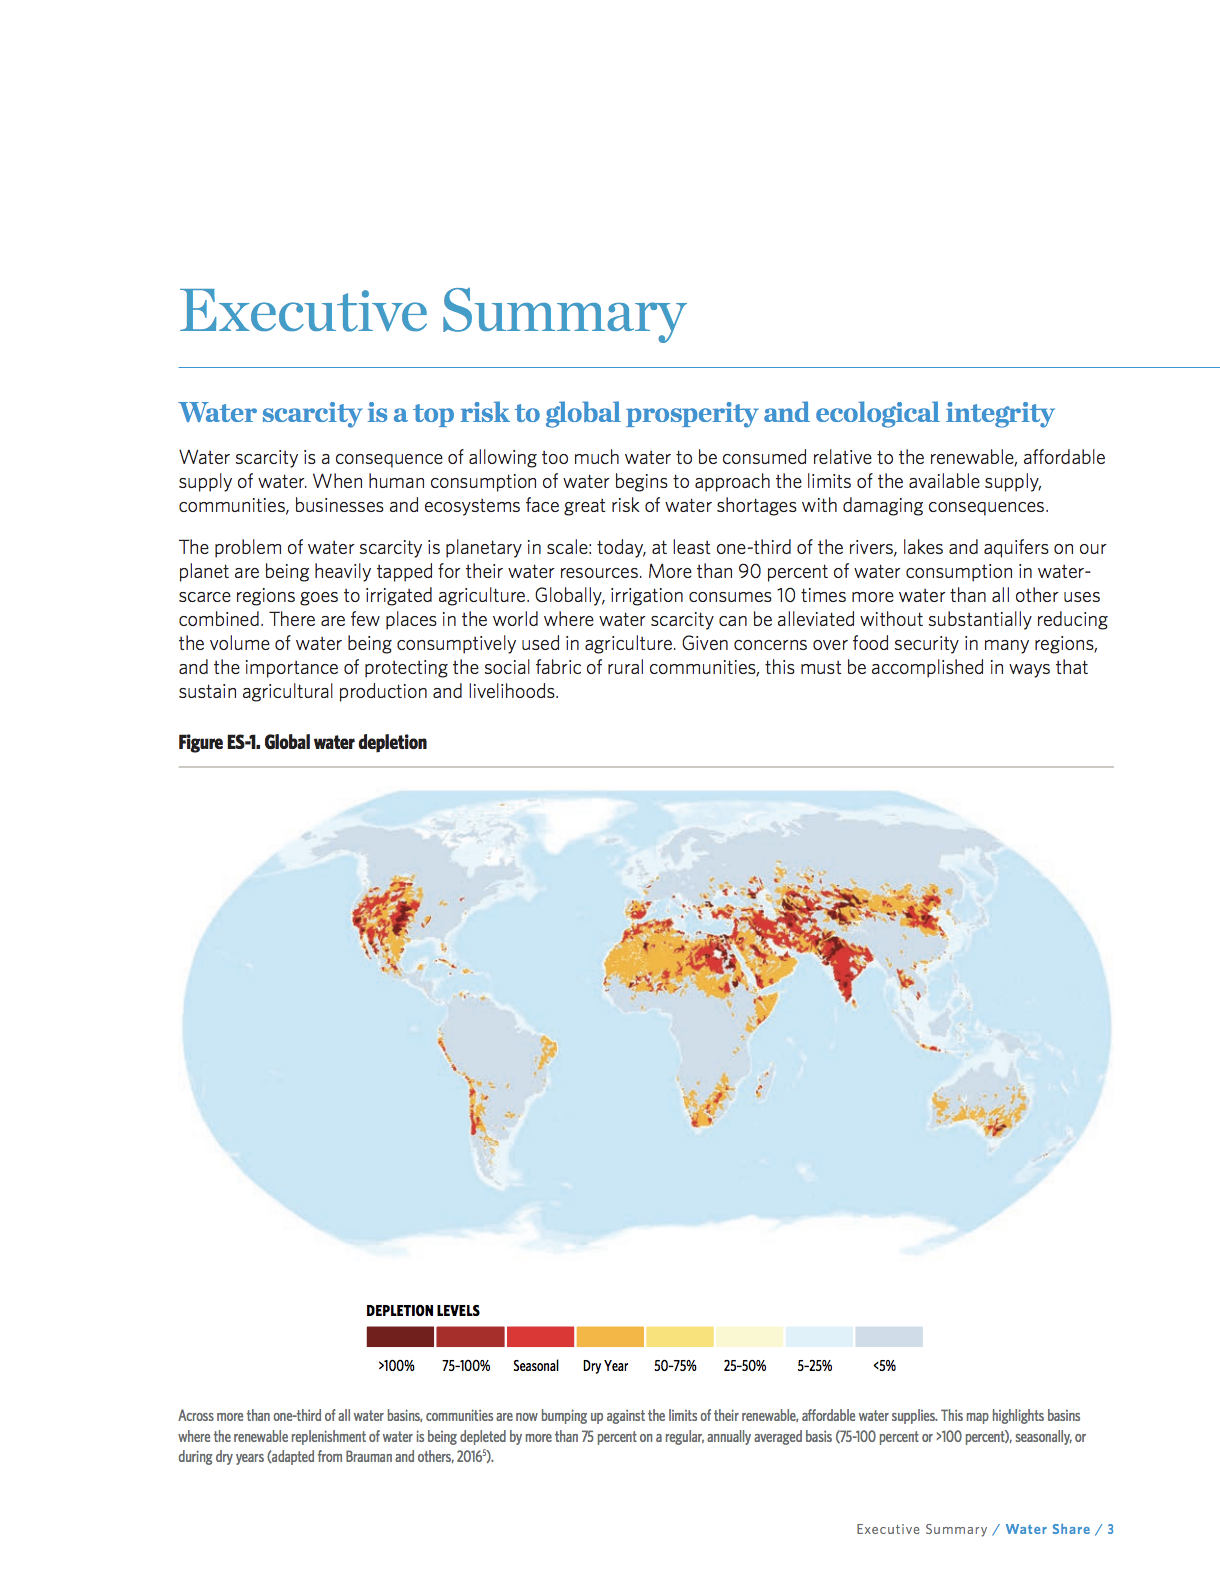 Thumbnail of Water Share Executive Summary